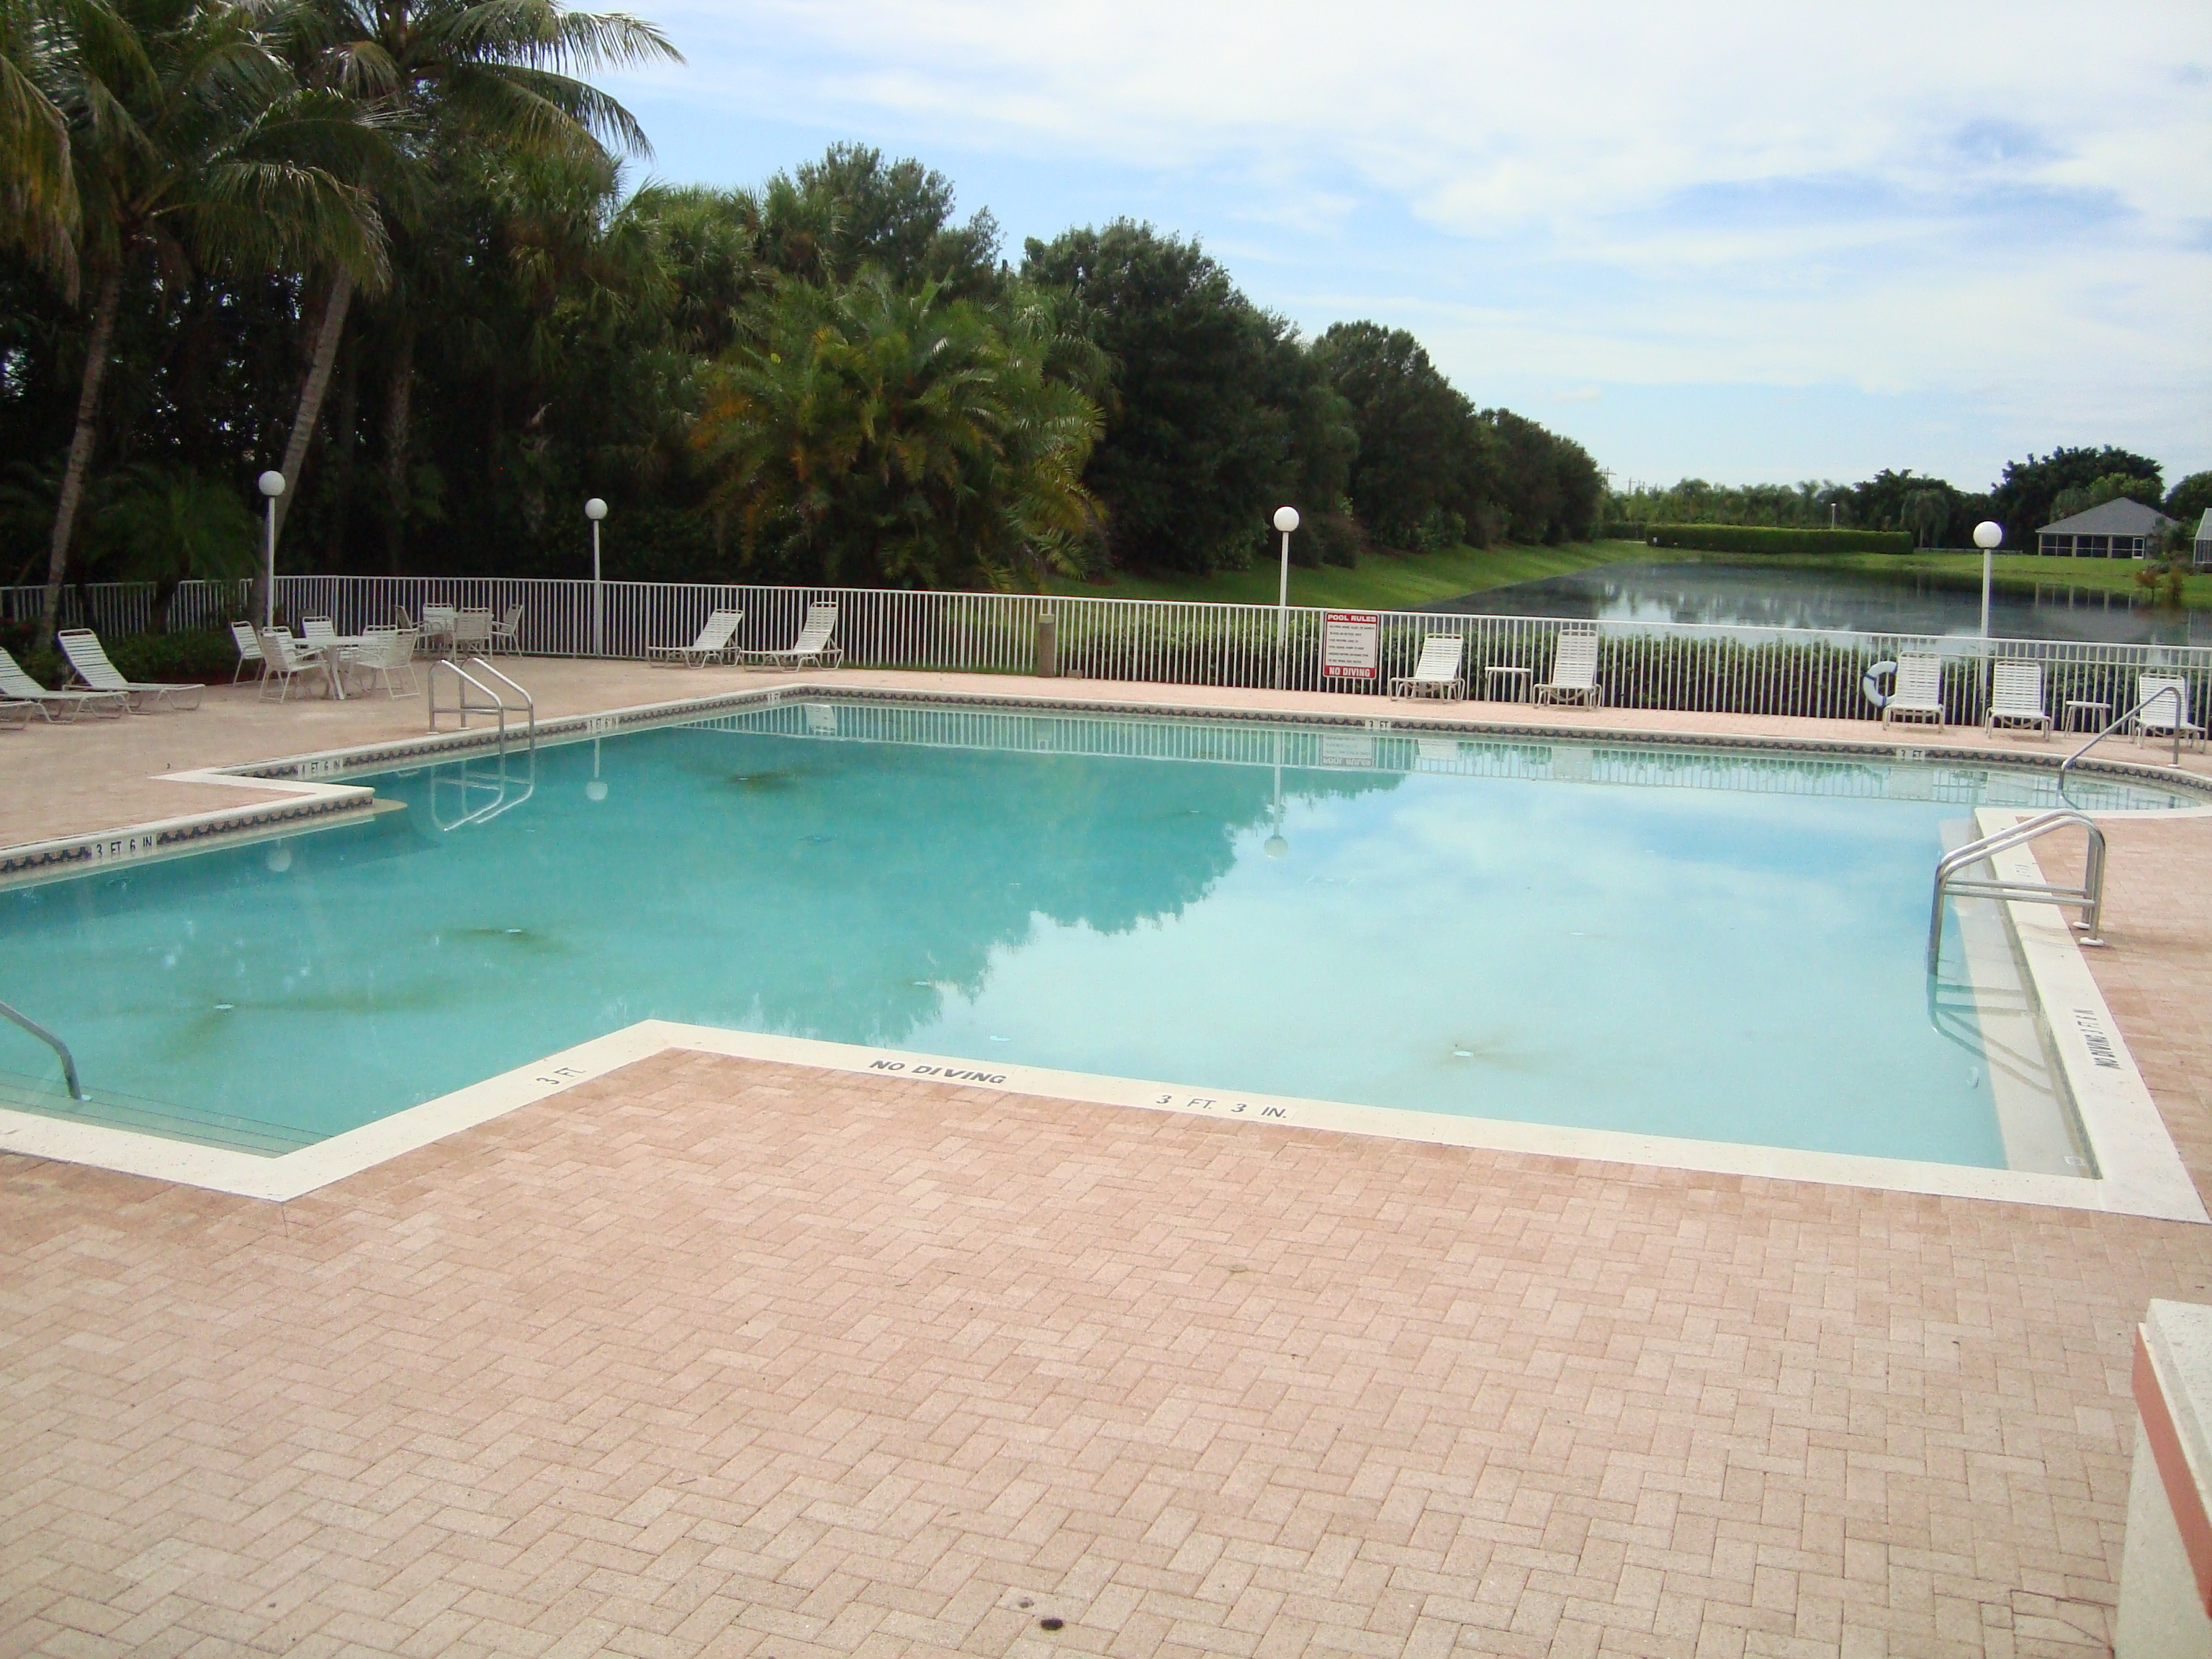 Pool at Orchards in Naples, Florida.